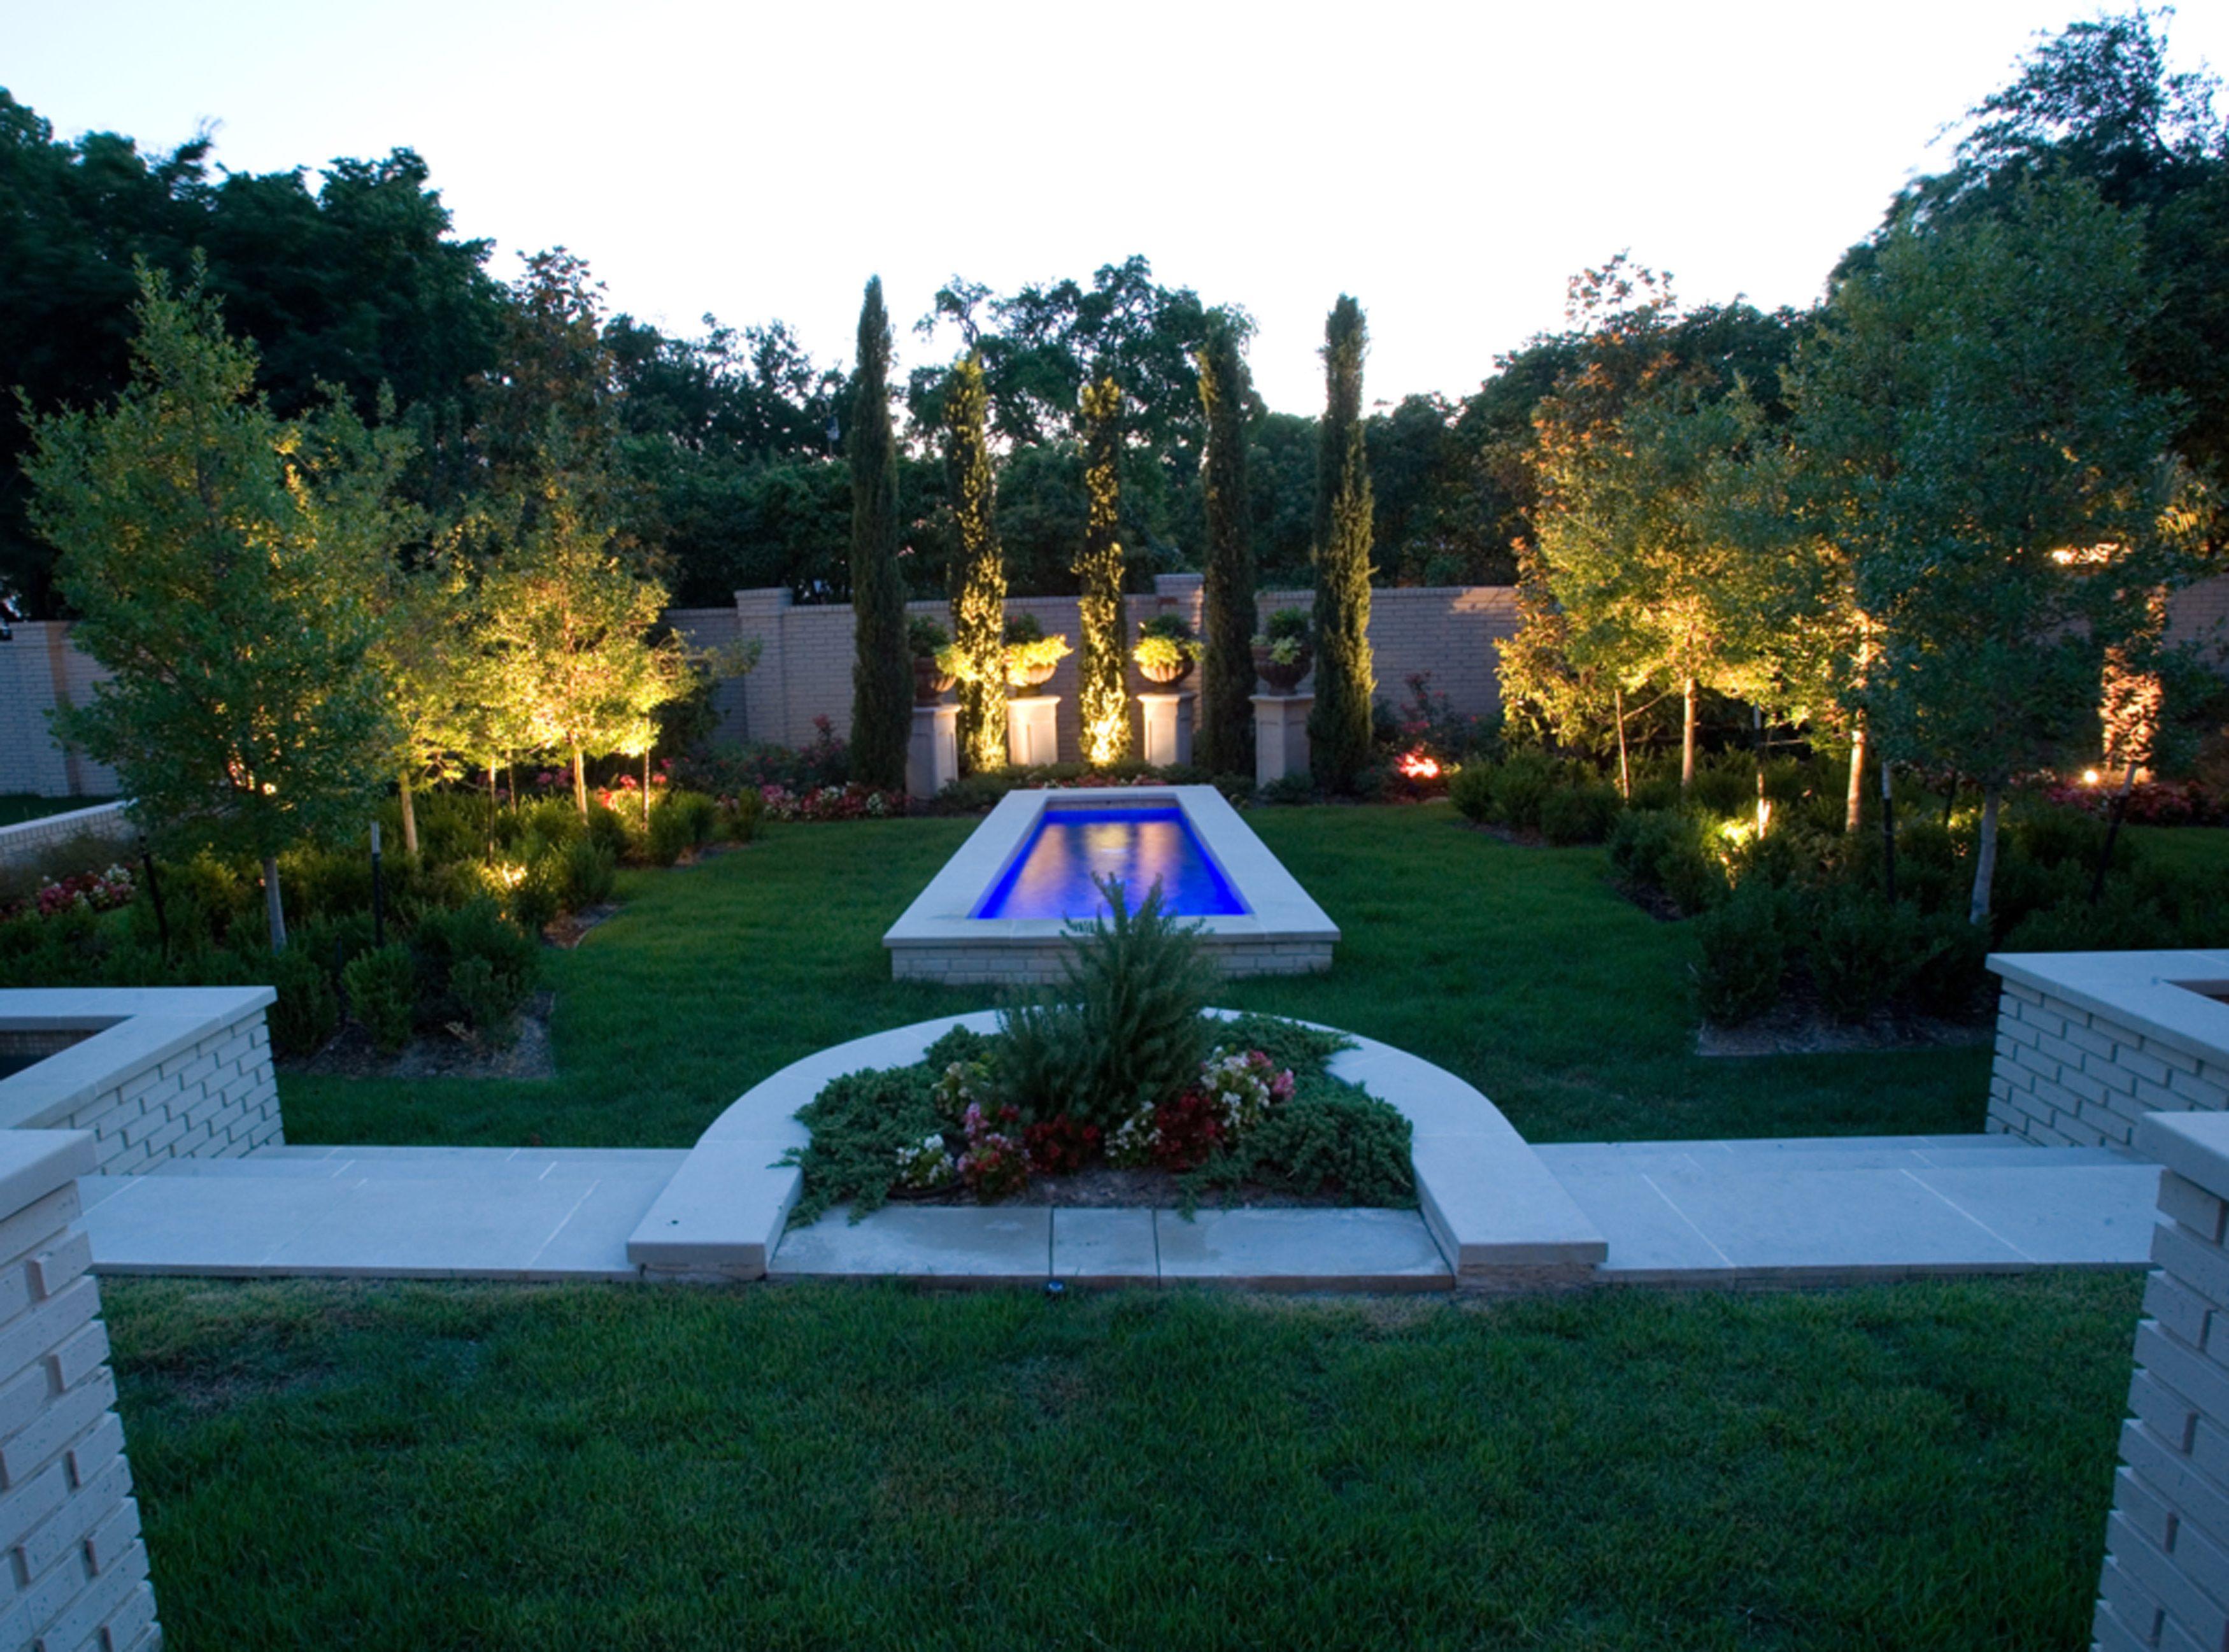 Minimalist For Tailor Your Lawn With A Stone Landscape Borders Lawn Connections Pool Area Lighting (View 24 of 25)